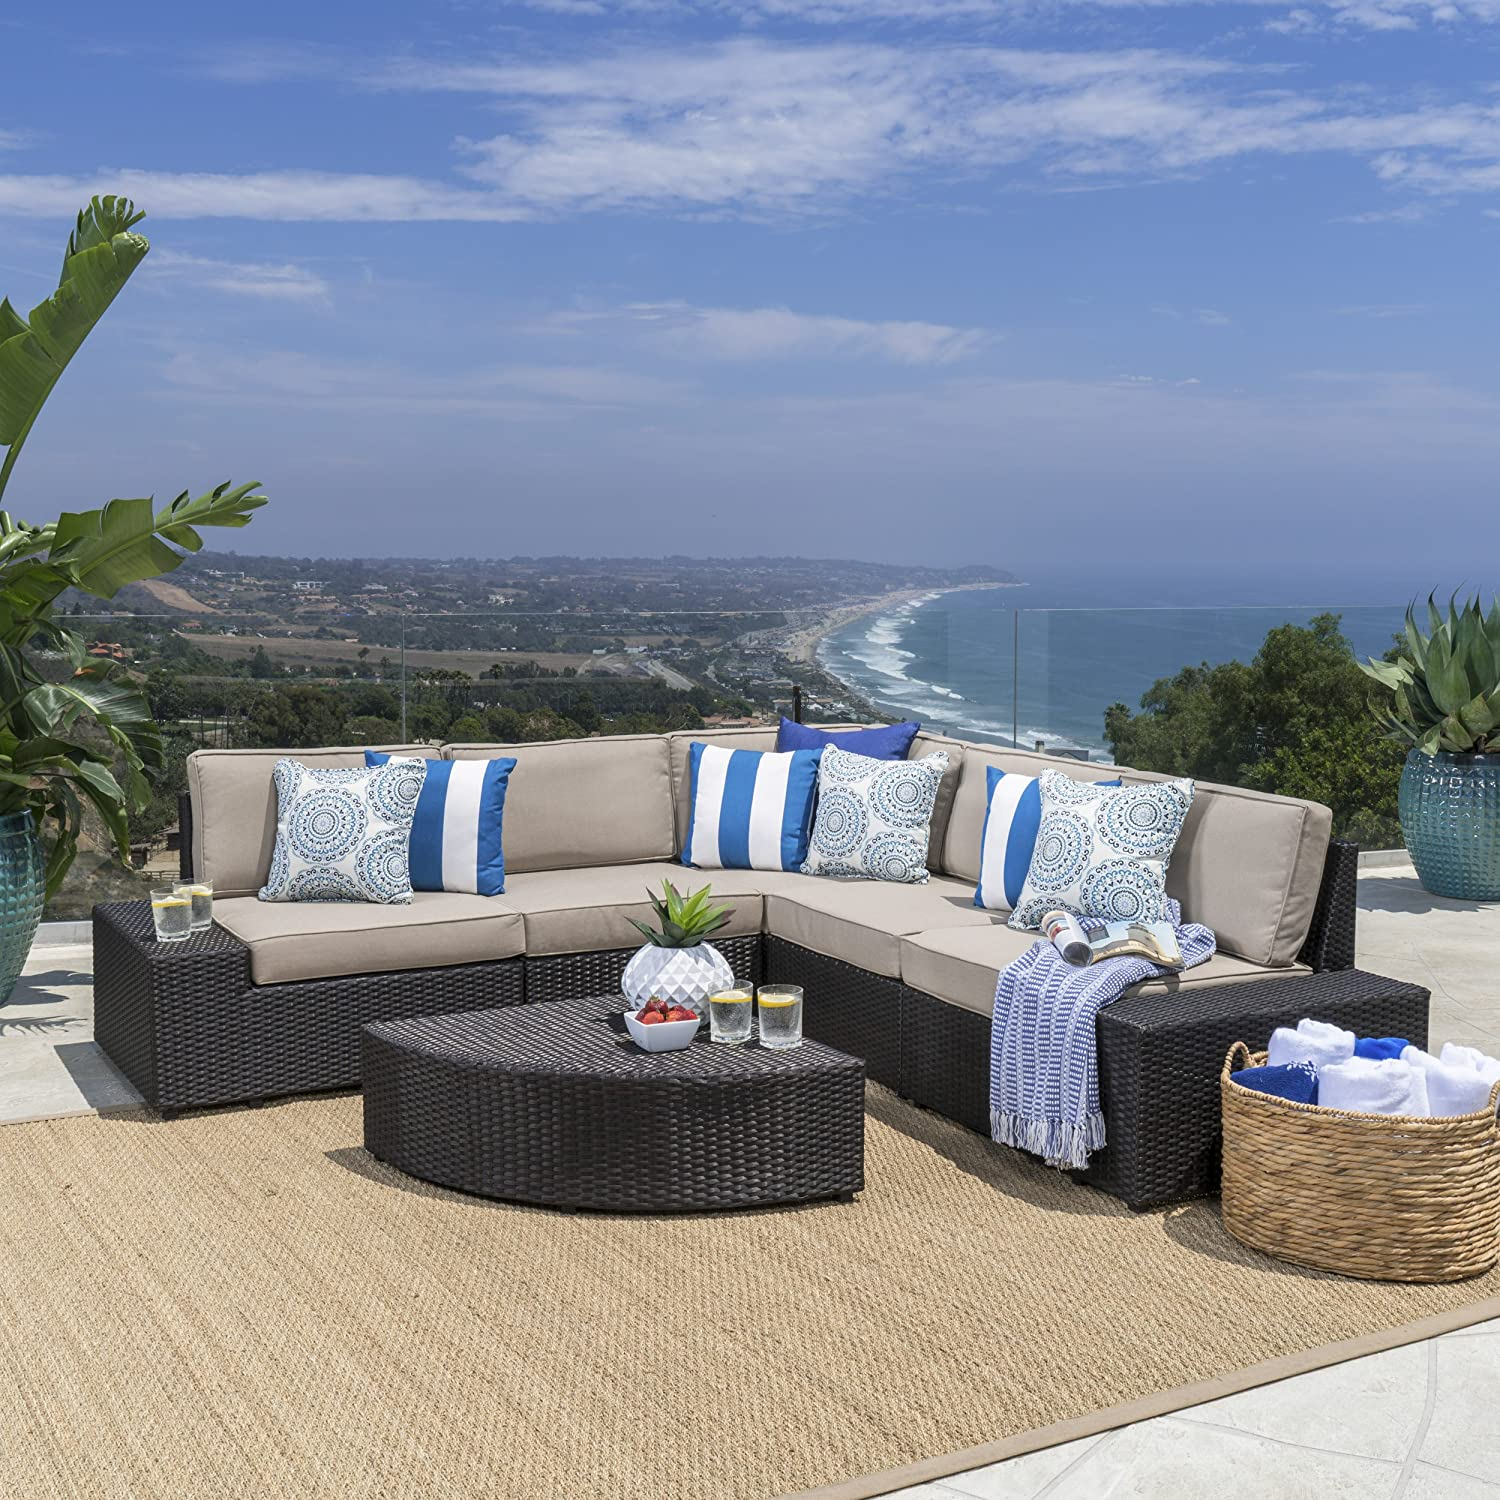 Reddington Outdoor Patio Furniture 6 Piece Sectional Sofa Set With Cushions